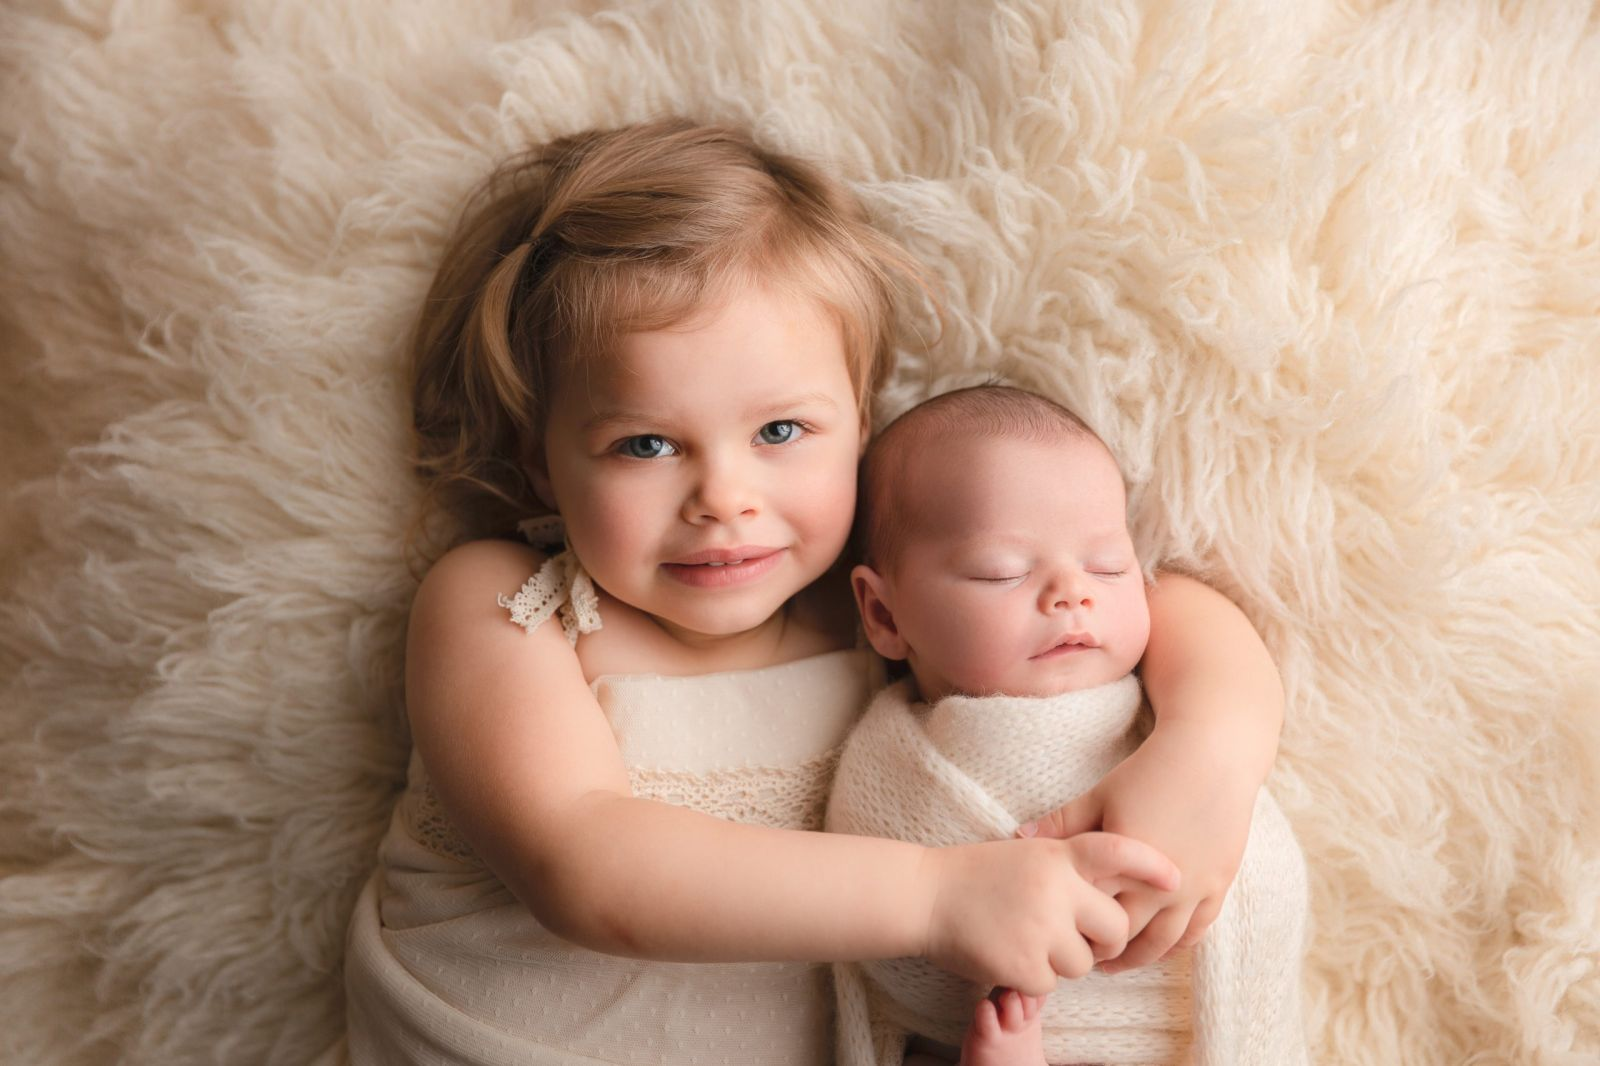 adorable 2 year old holding sleeping newborn sister